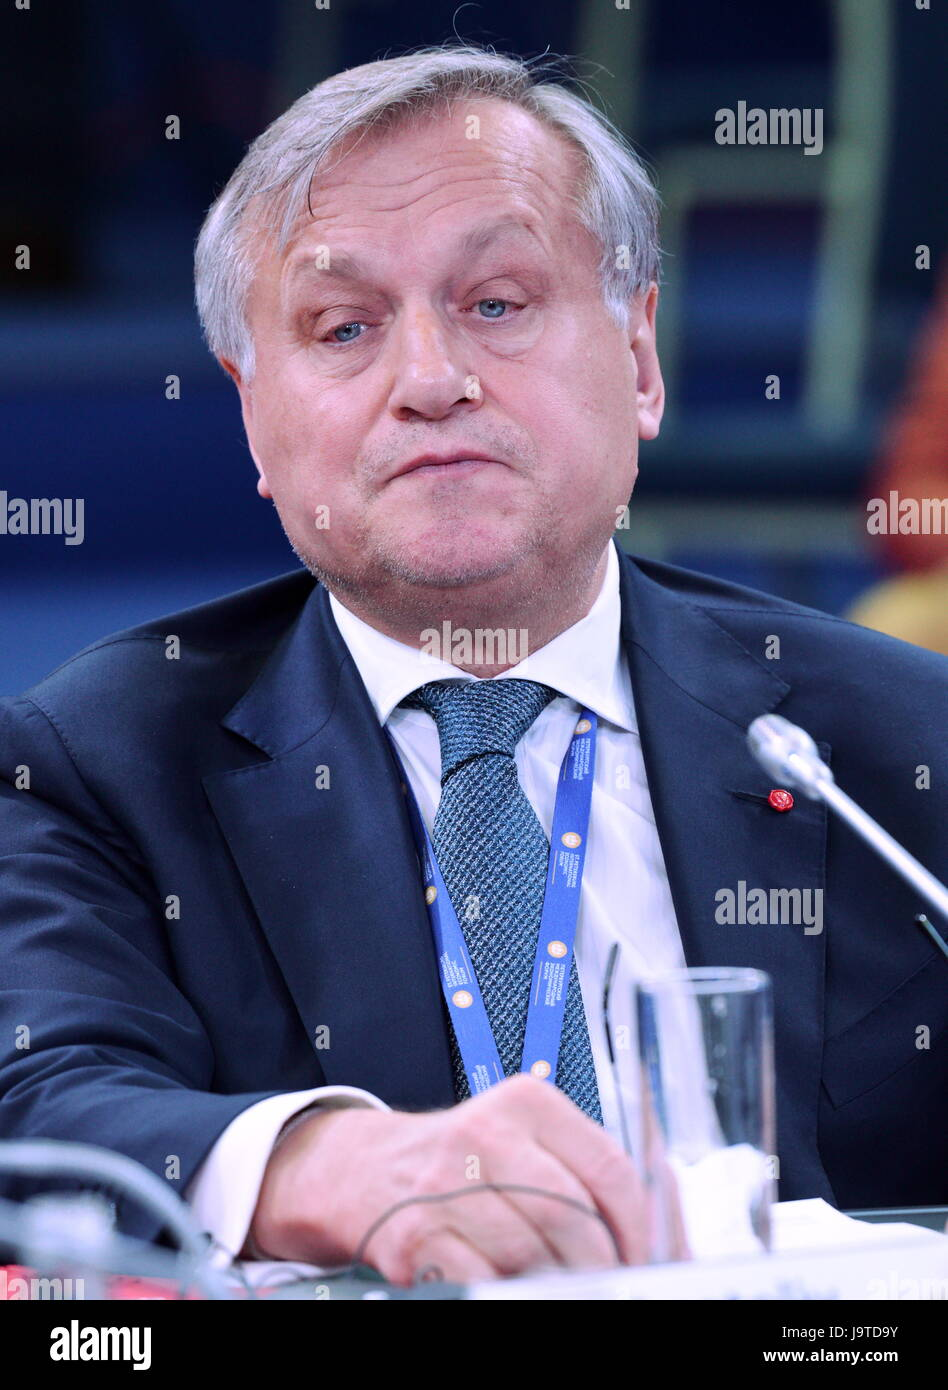 St Petersburg, Russia. 3rd June, 2017. Anatoly Usov, Regional Director for Russia & CIS at SKF, at a panel session - Stock Image